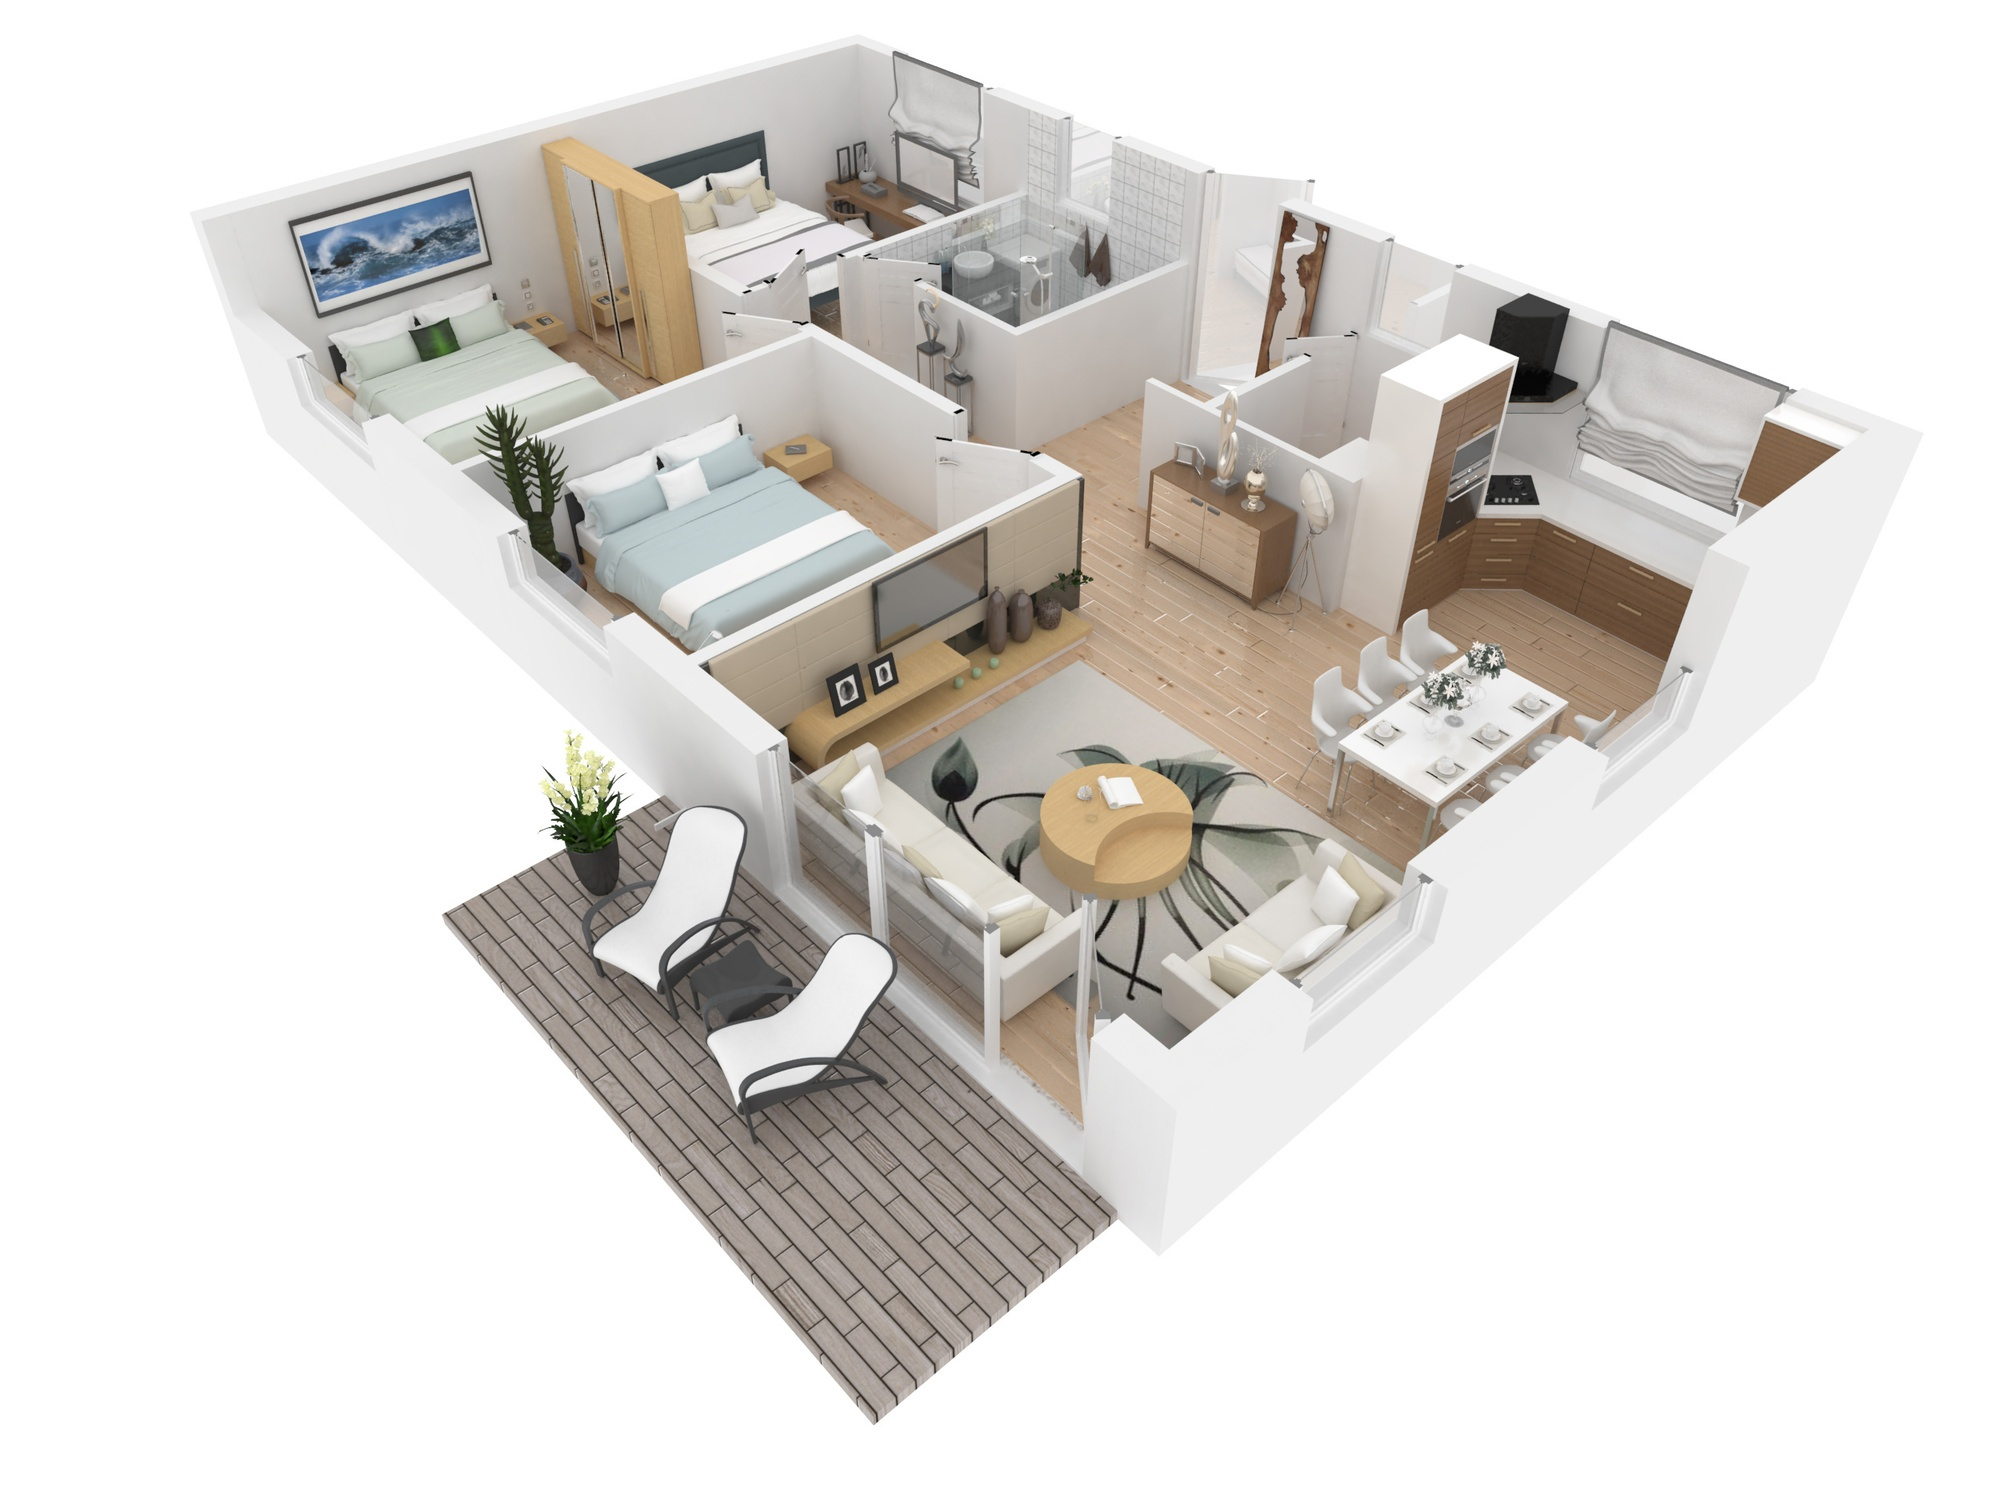 Designblendz Blog - Architecture & Real Estate Resources ... on house plan ideas, house site plans, house plan sketchup, house plan software, house plan brick, house plan books, house plan construction, house plan magazines, house plan builder, house plans with garage under house, house plan perspective, house and barn combination plans, house plan layout, house plan carpenter, house autocad, house plan games, house plan model, house plan drawing, house plan architecture,